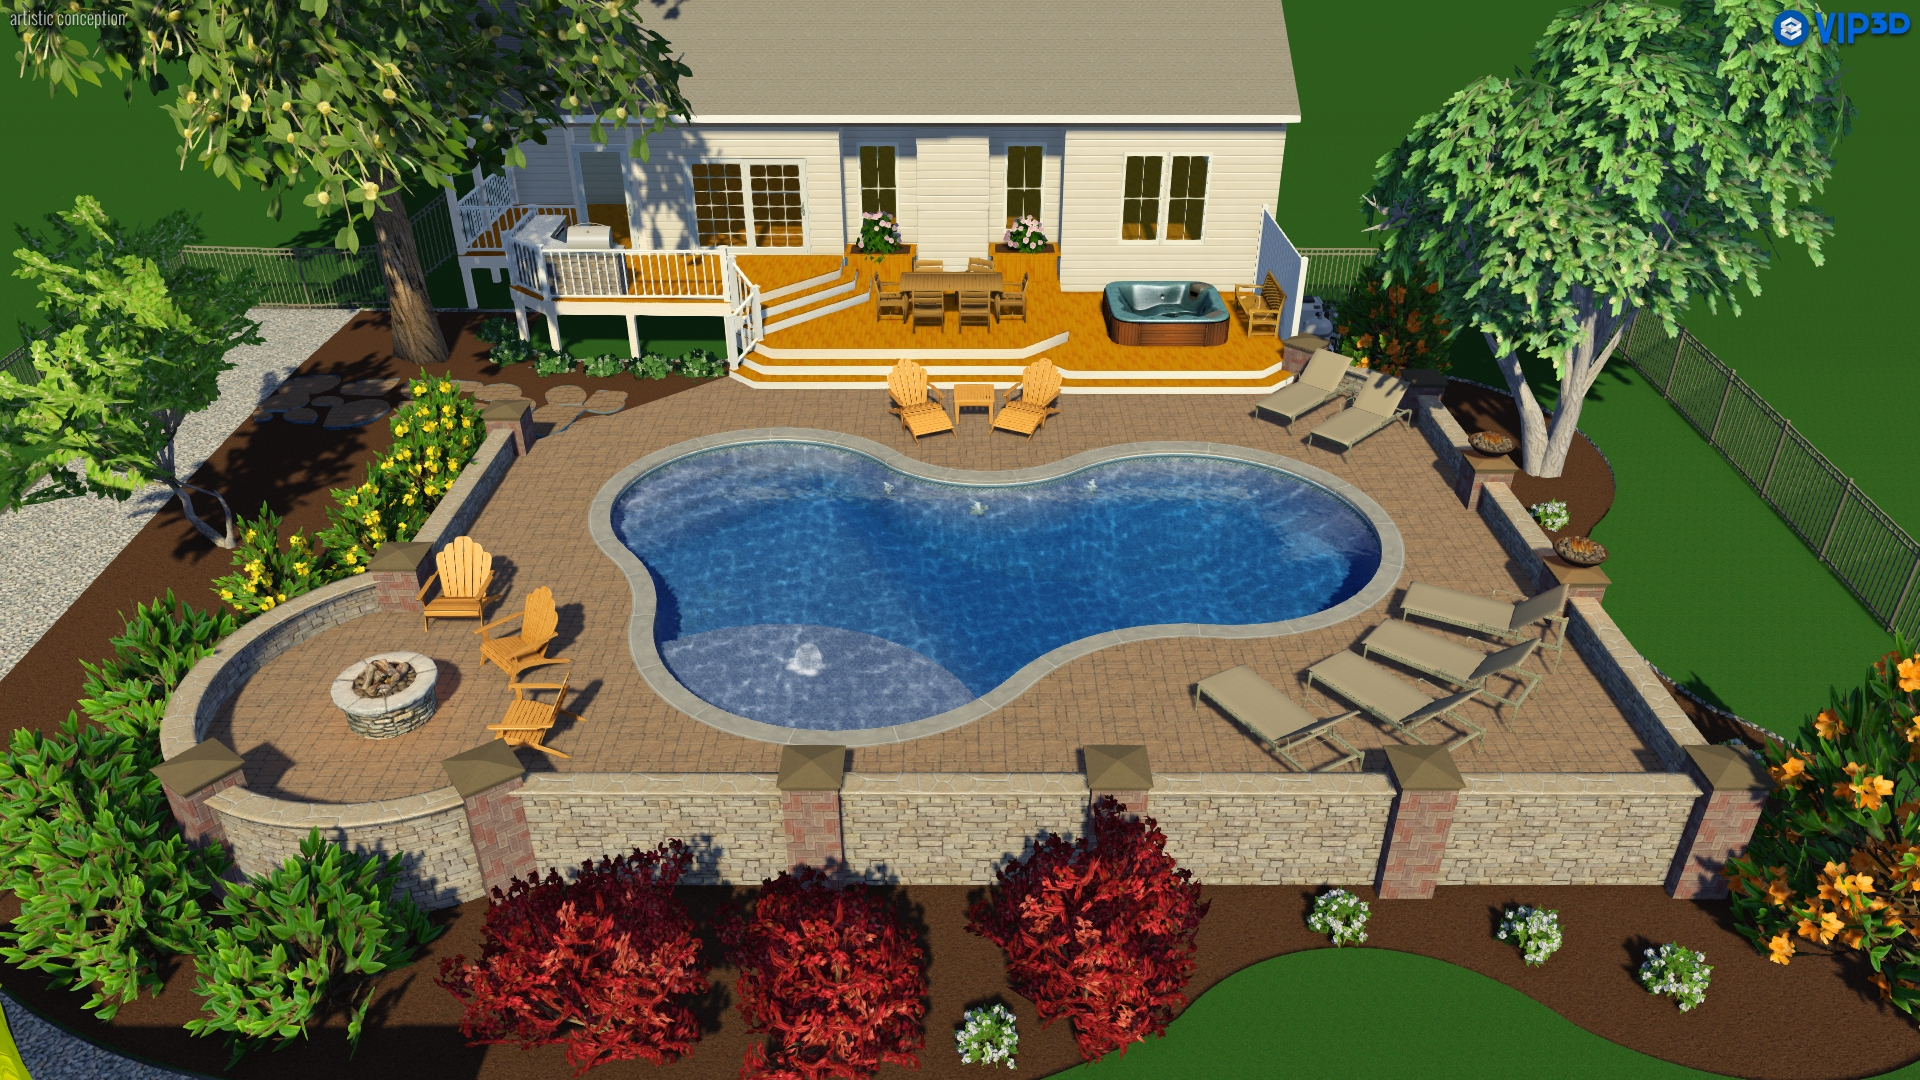 Raleigh Landscape Design: 3D Pool & Spa Services | Choice P&S on outdoor kitchen patio, small yard pool ideas, outdoor kitchen construction, outdoor kitchen lighting, outdoor kitchen designs with roofs, backyard pool ideas, fire pit pool ideas, patio pool ideas, pond pool ideas, bedroom pool ideas, beach entry pool ideas, courtyard pool ideas, fountain pool ideas, garden pool ideas, privacy fence pool ideas, landscaping pool ideas, garage pool ideas, spa pool ideas, outdoor kitchen garden, jacuzzi pool ideas,